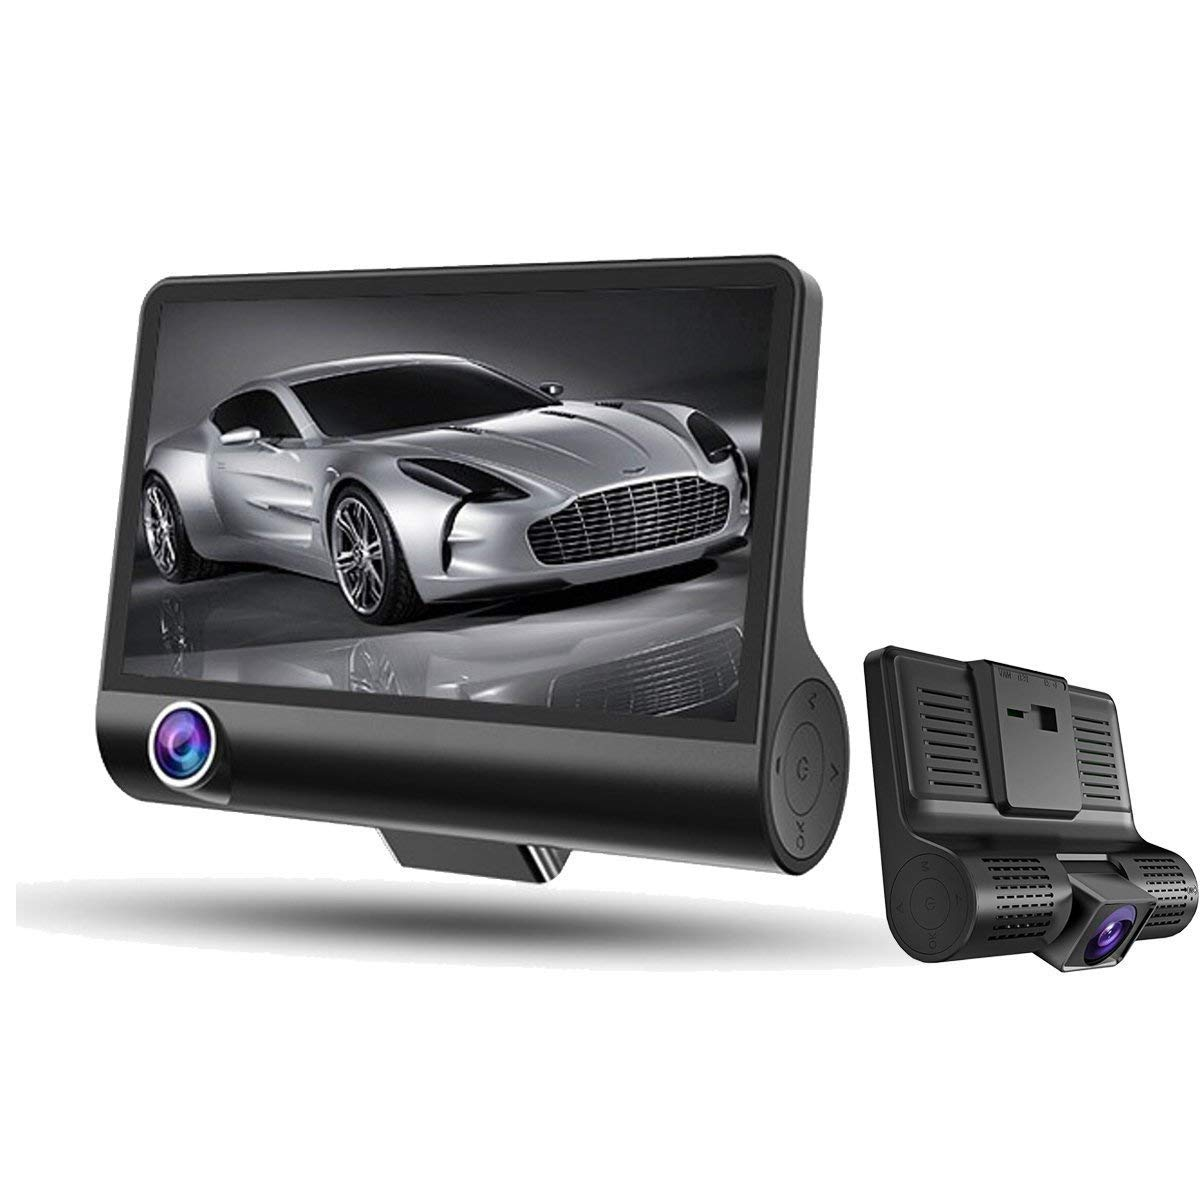 Dash Cam, Car Camera Dashboard Camera Recorder Dual Camera Car DVR Inside - Outside Surveillance1080P HD Night Vision, Wide-angle Car Video Recorder with 4 inch Display Video G-Sensor Loop Recordin